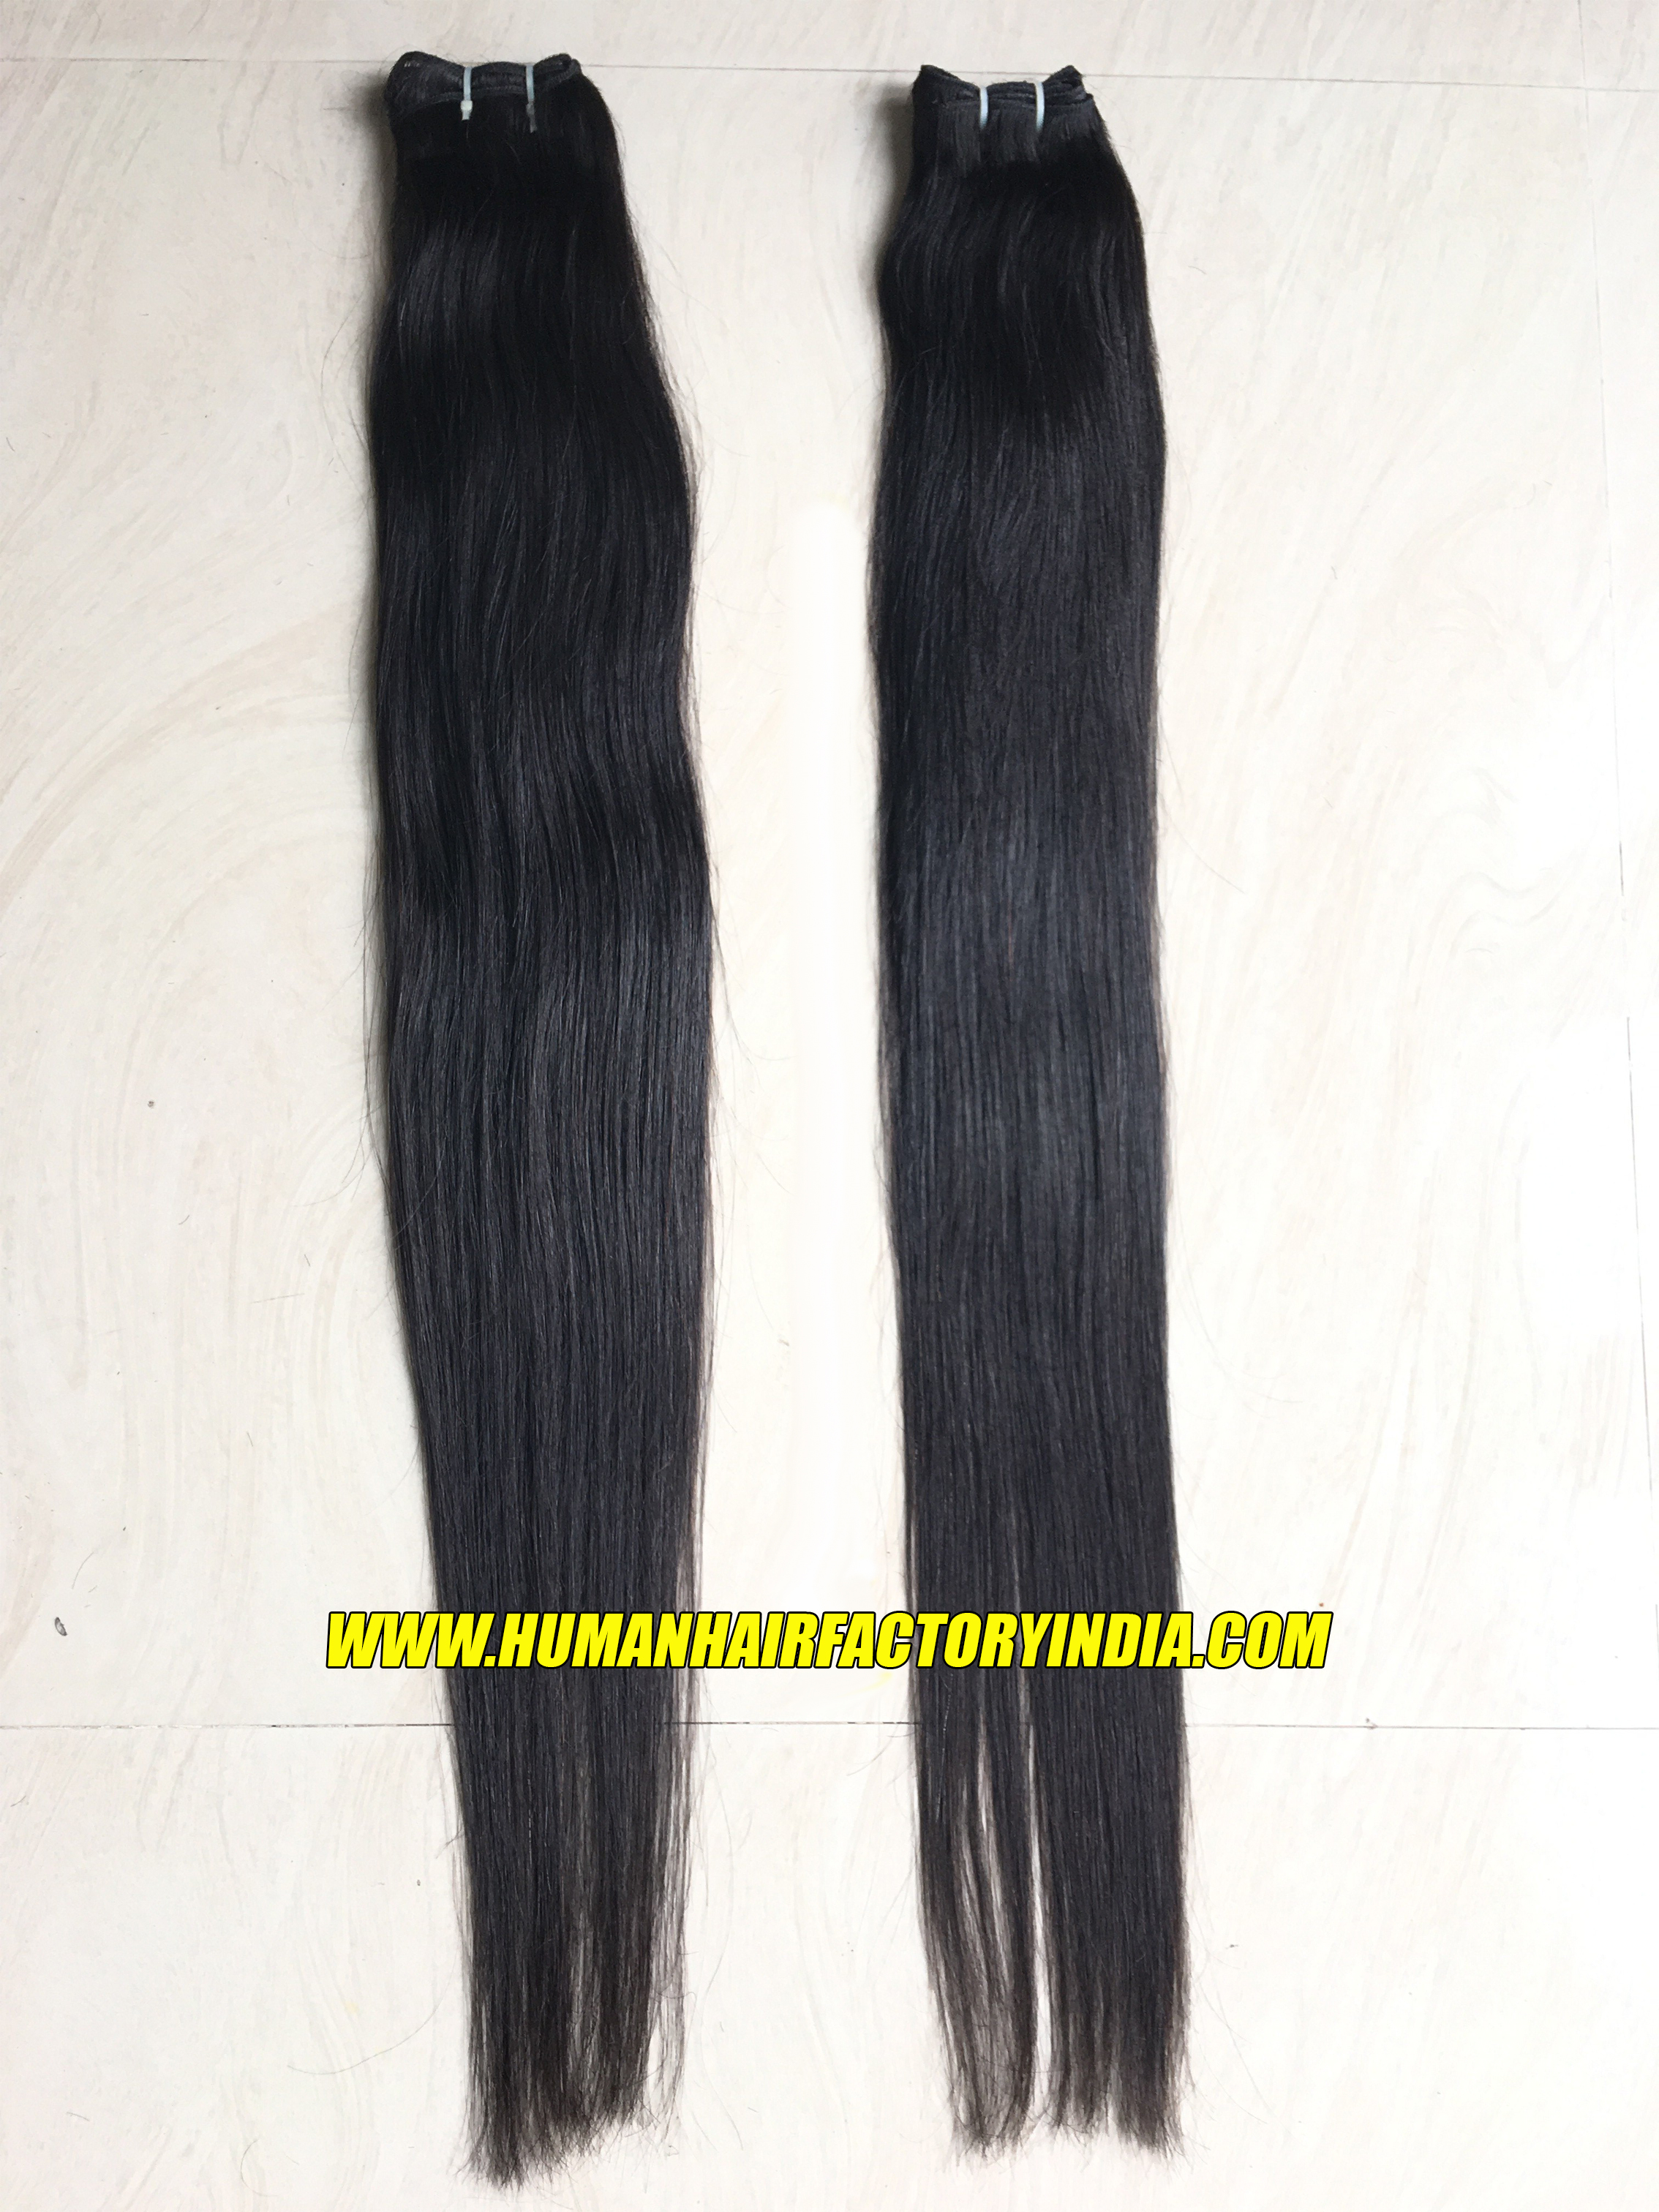 Indian Human Hair Wholesale Indian Human Hair Wholesale Remy